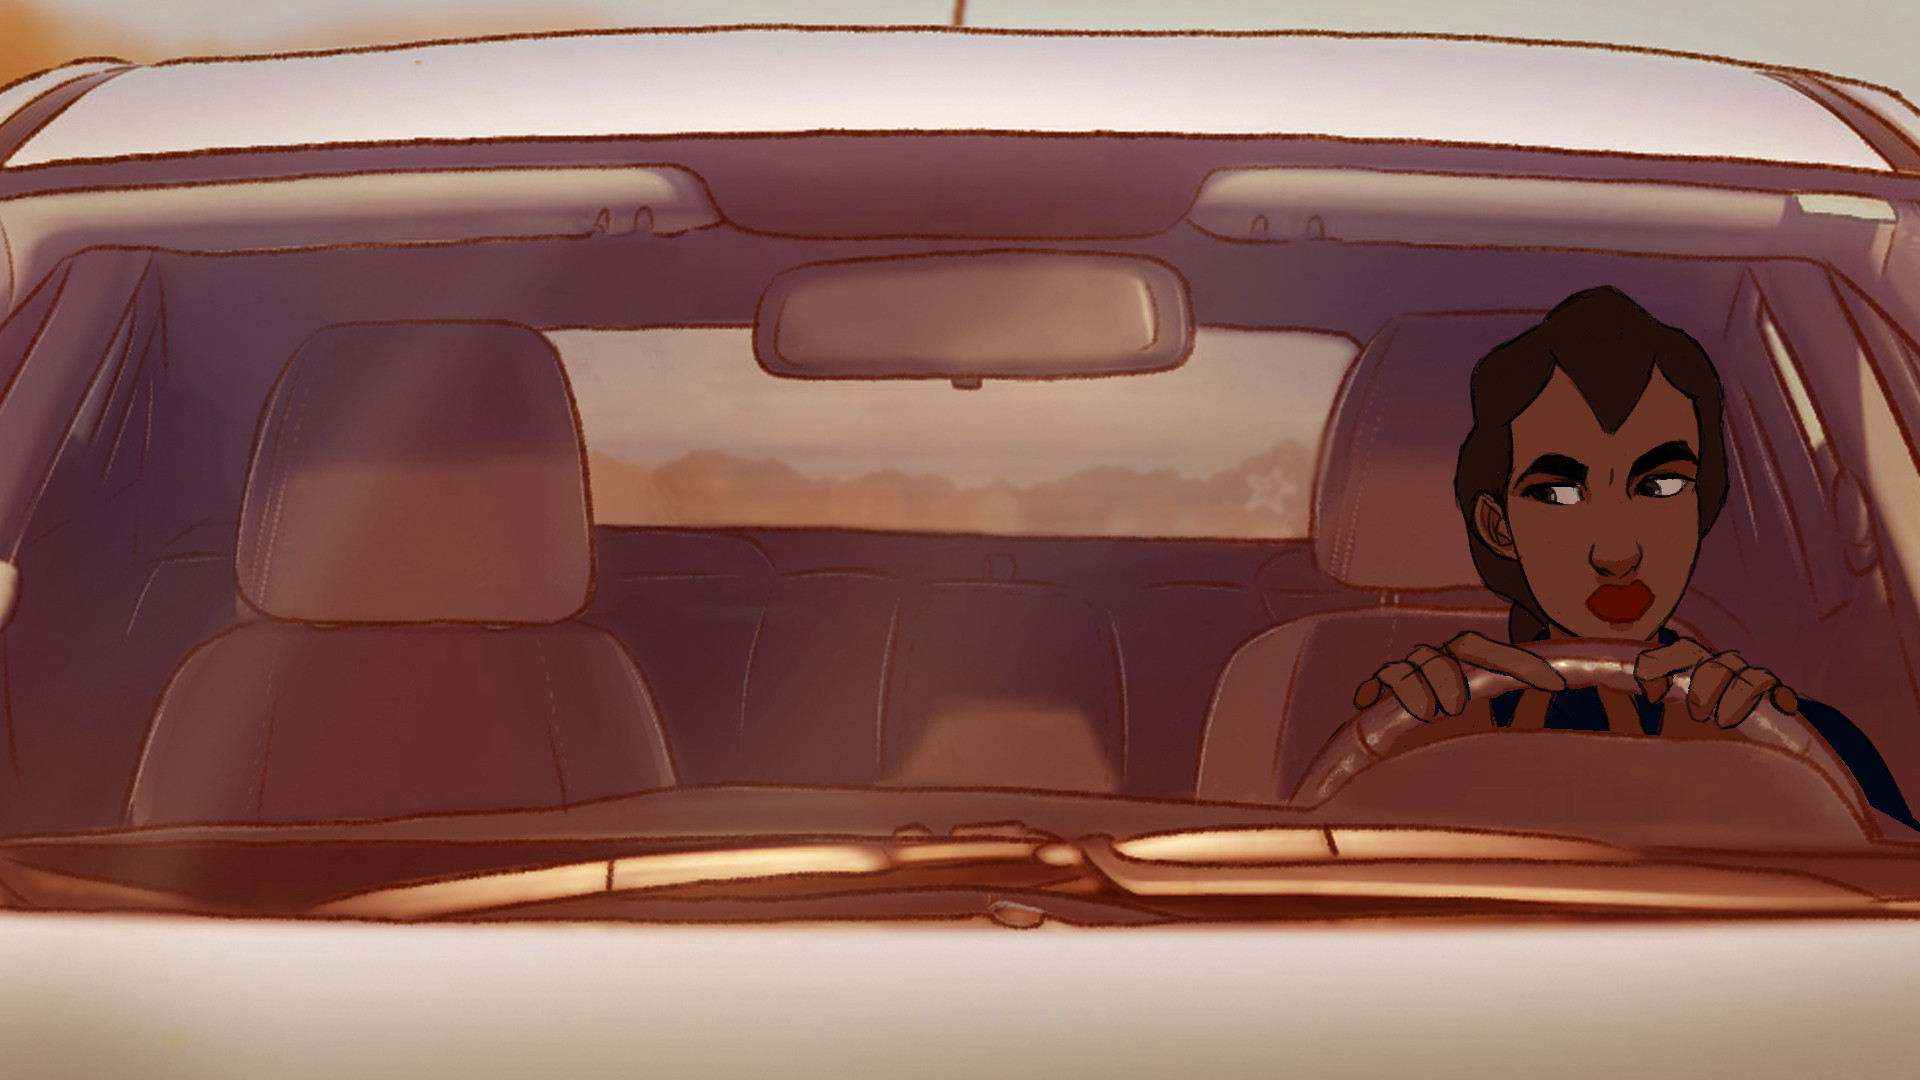 car background still 4.jpg